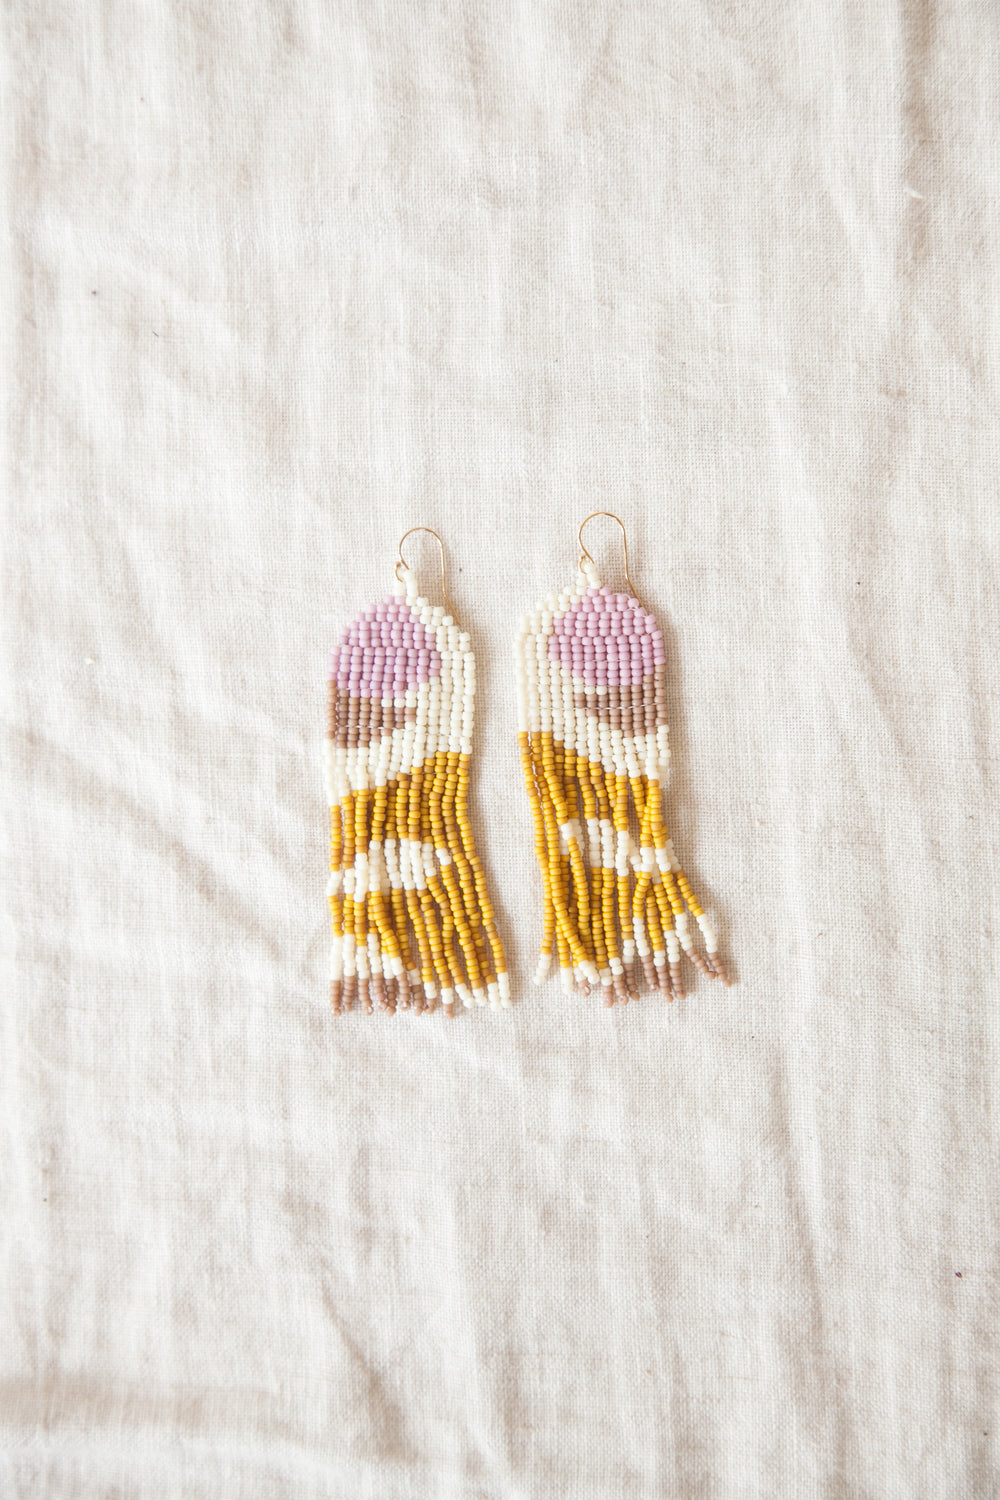 Yoake Aku Beaded Earrings